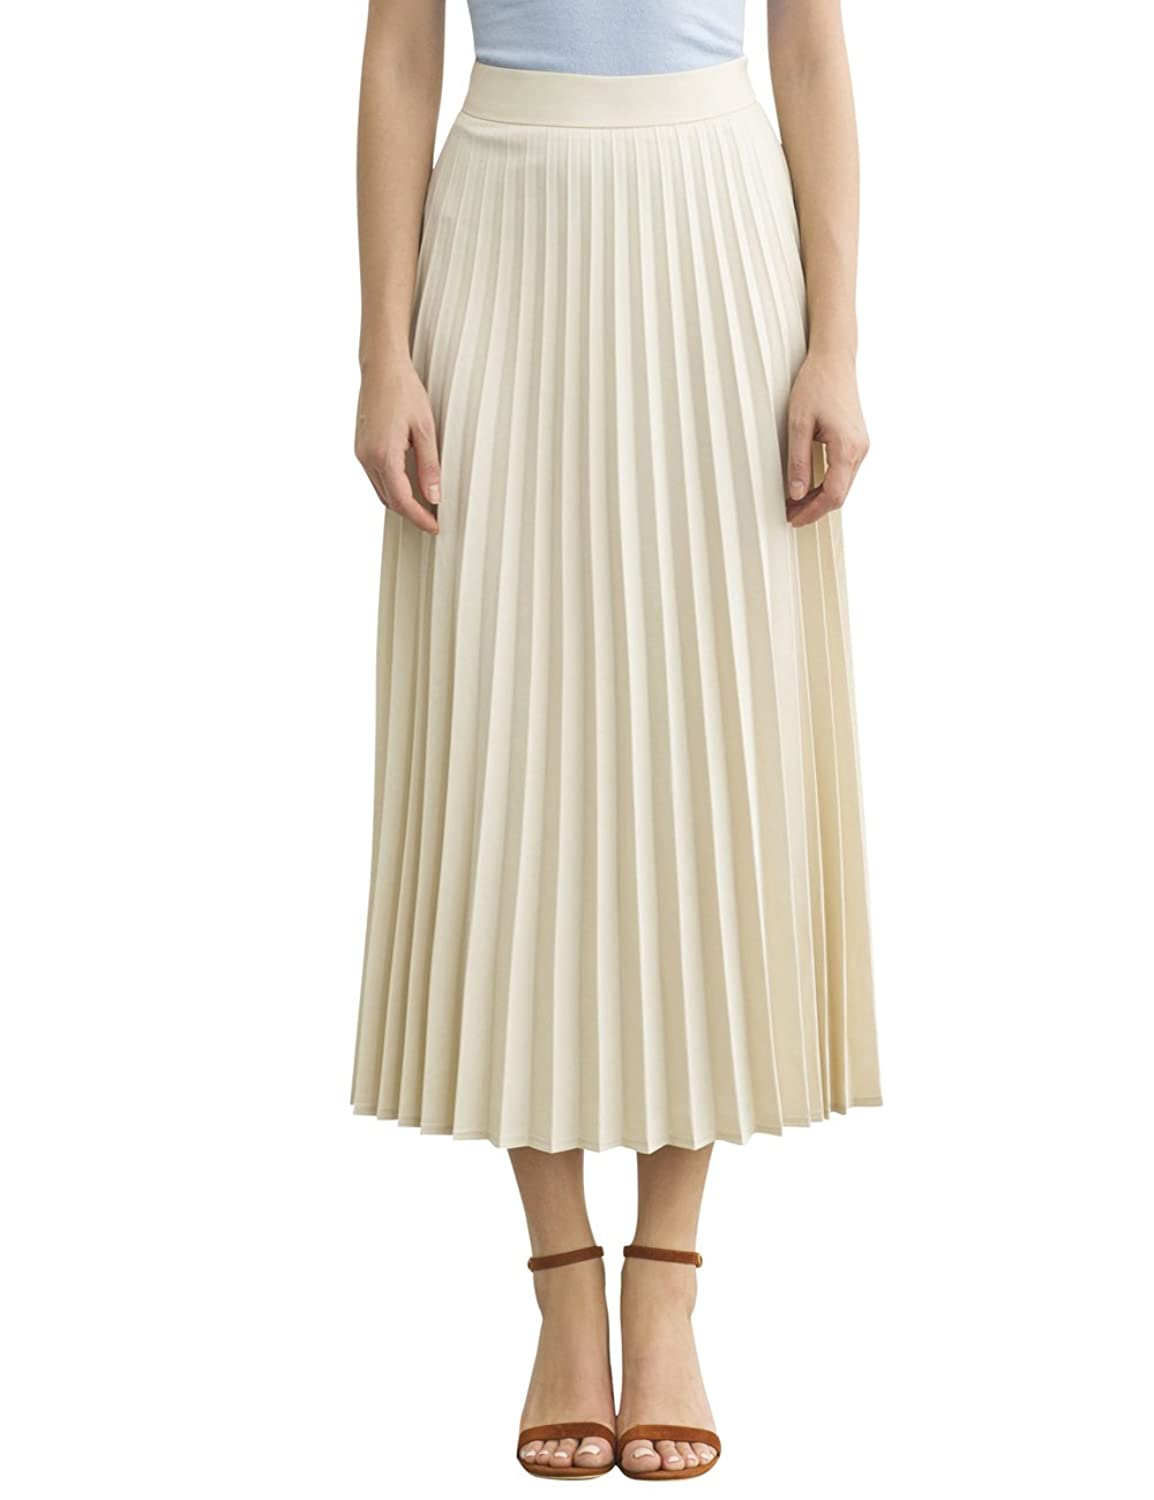 Retro Skirts: Vintage, Pencil, Circle, & Plus Sizes Simple Retro Womens High Waist Basic Pleated A-line Midi Skirt $24.99 AT vintagedancer.com